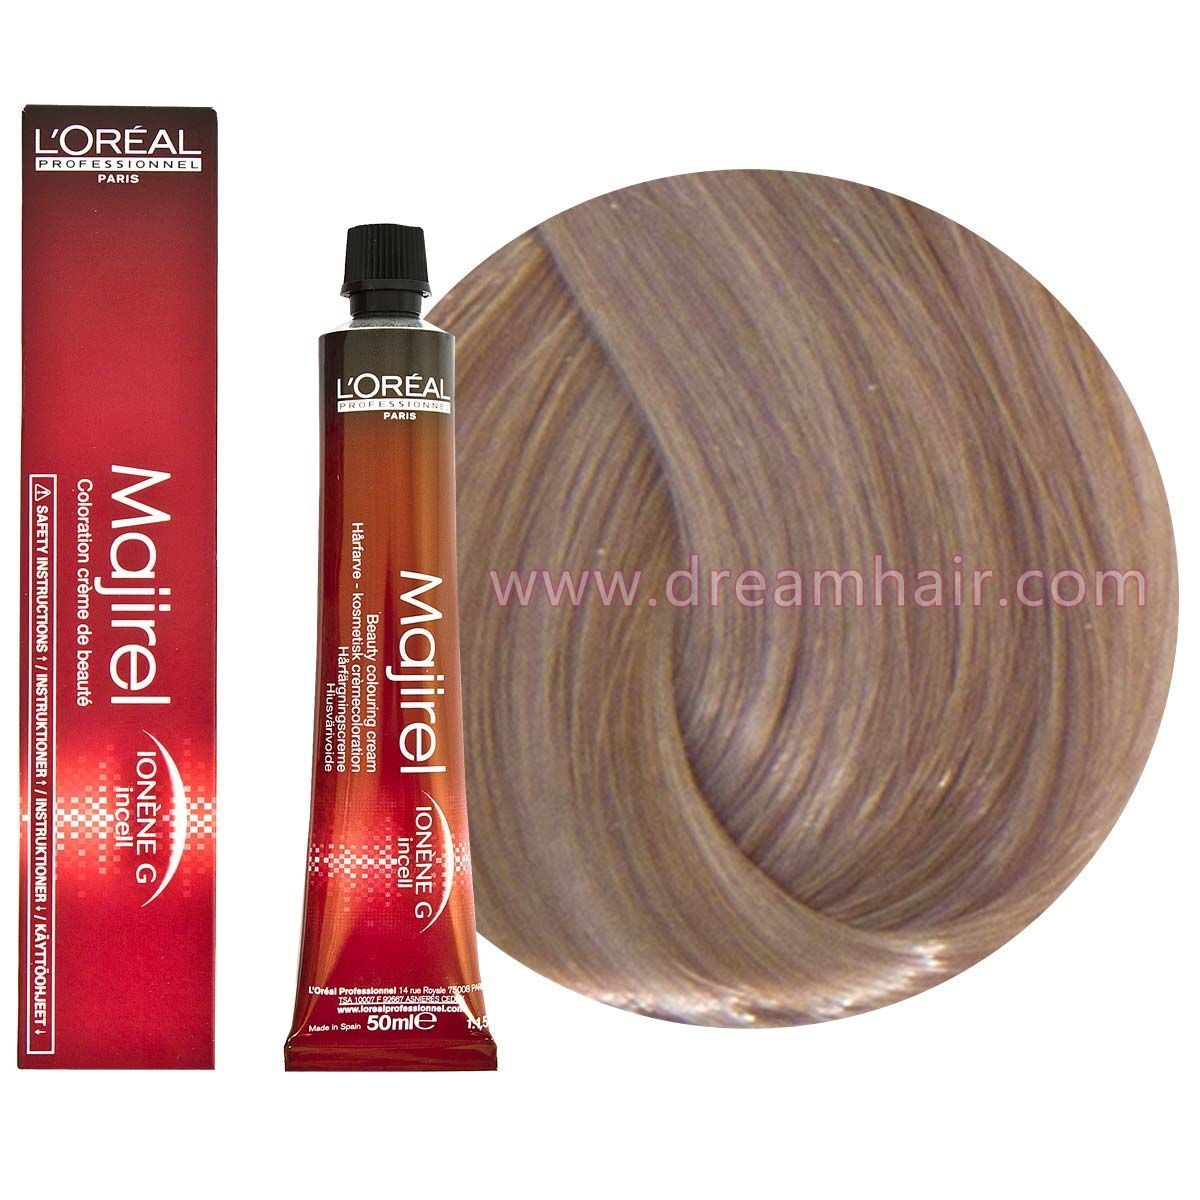 Loreal Majirel Blond 912 Loreal Majirel Permanent Hair Color